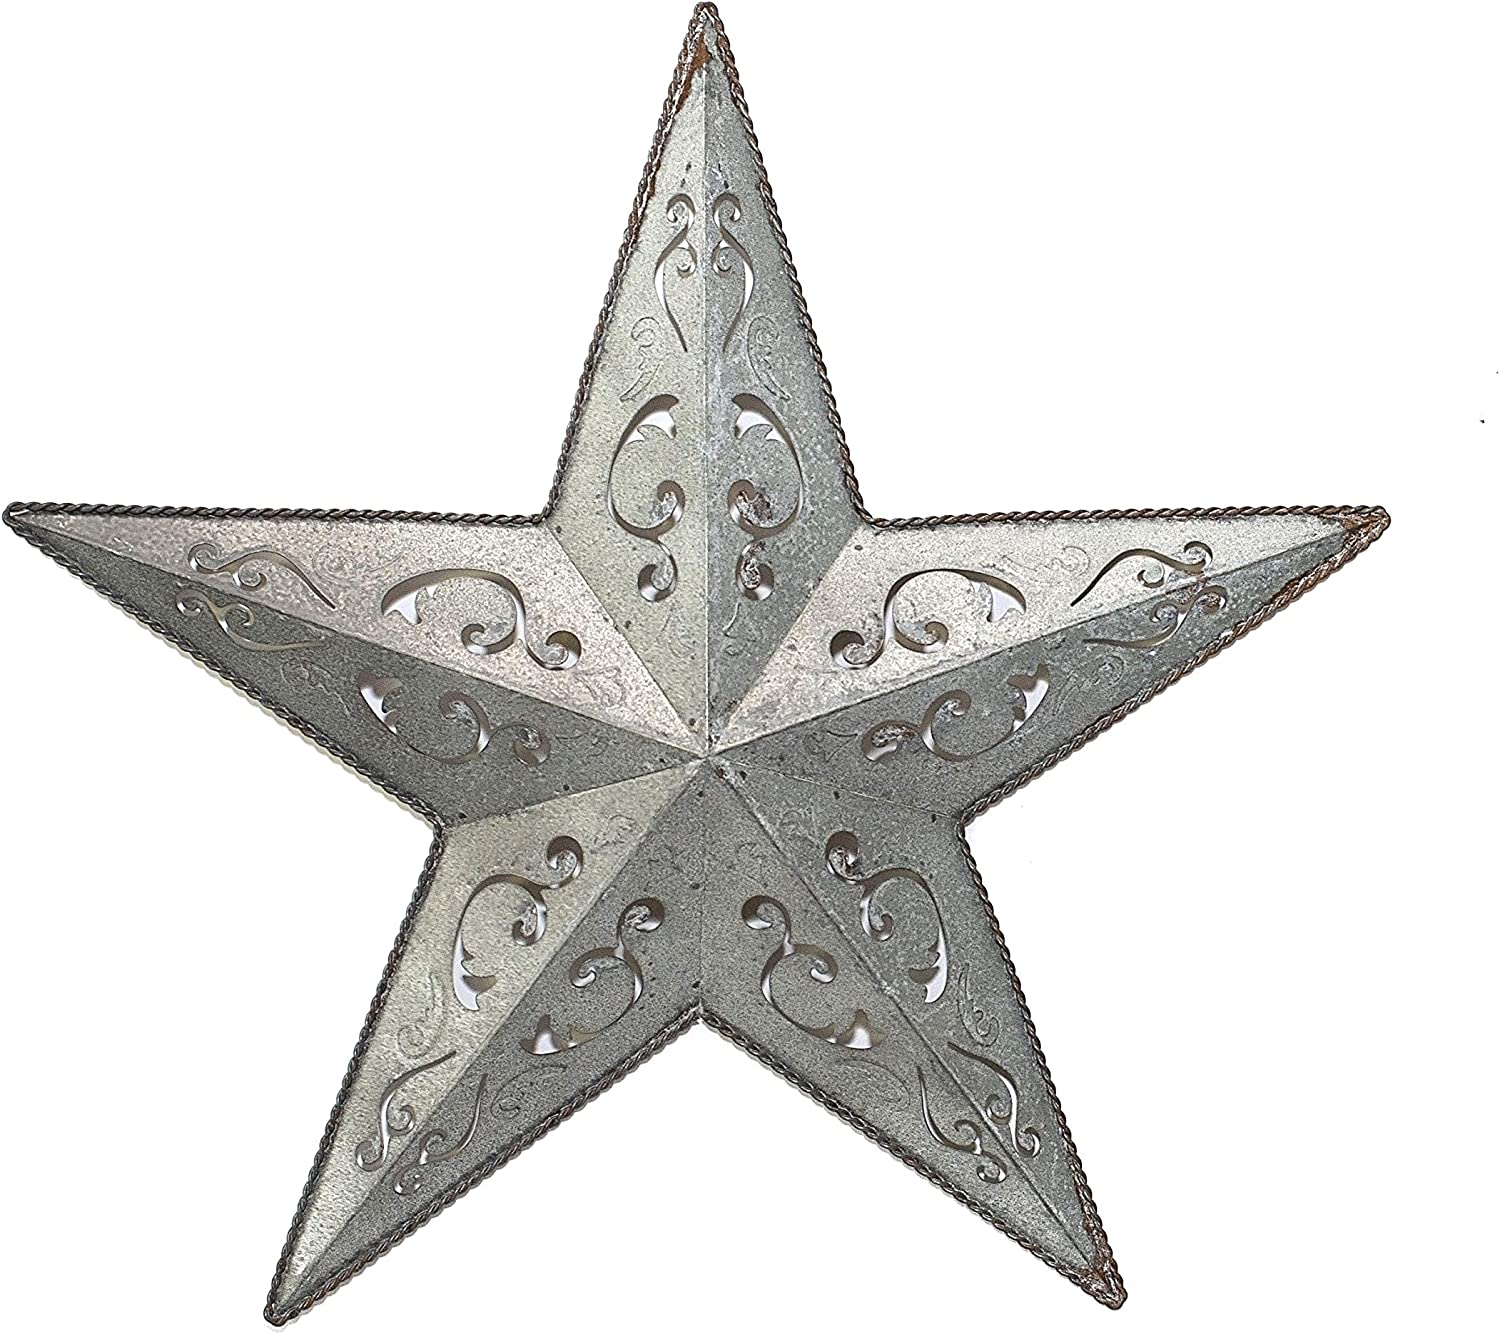 Amazon Com Galvanized Lacy Metal Barn Star 24 Gray Rustic Metal Star Rustic Metal Stars For Metal Wall Decor Rustic Wall Decor Country Outdoor Christmas Metal Star Wall Decor Perfect Home Decor